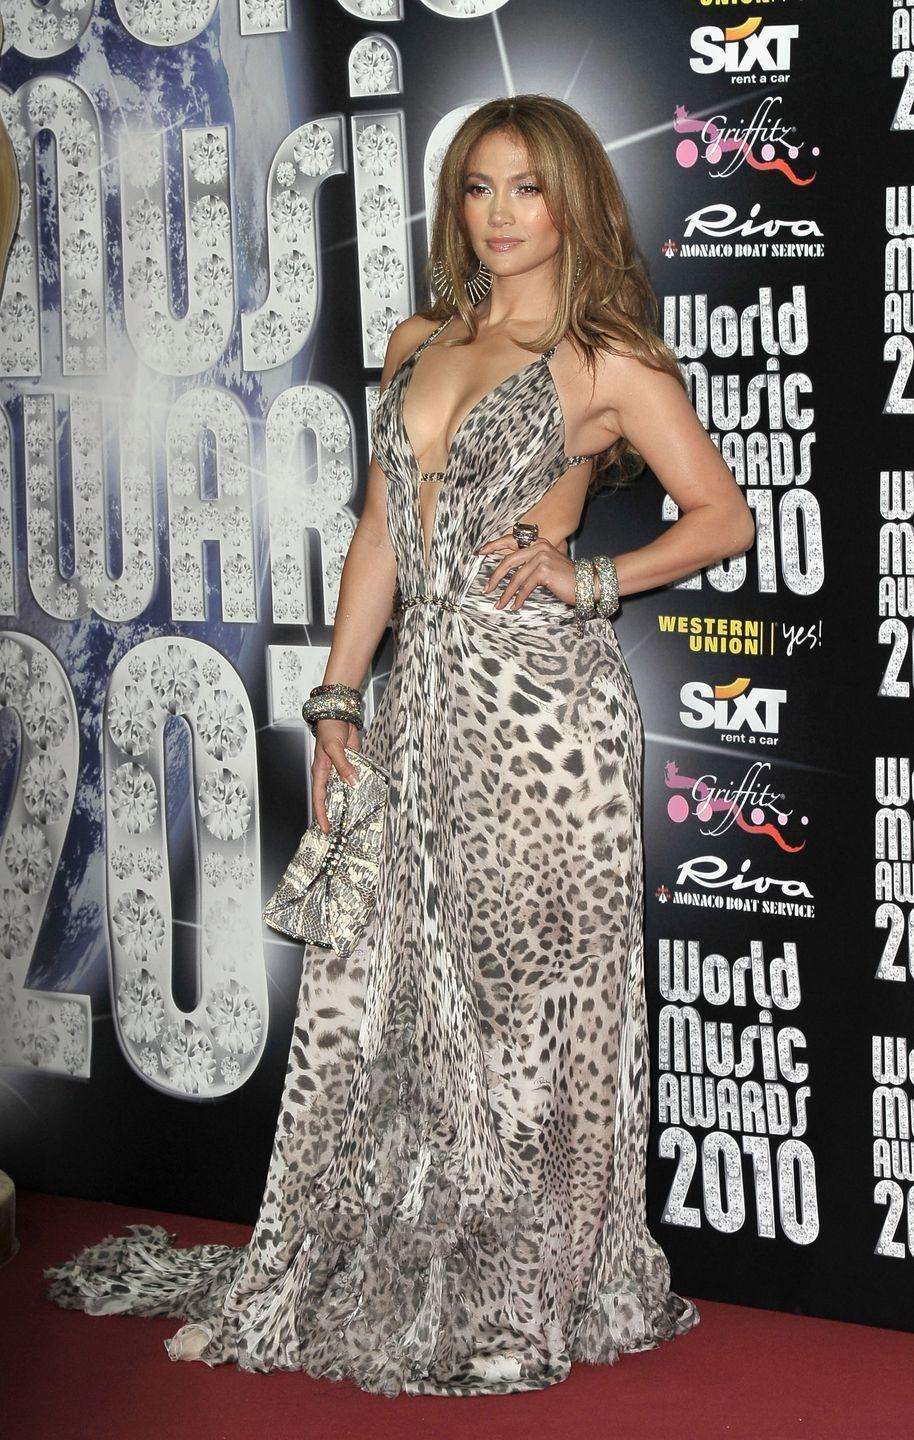 <p>More! Animal! Prints! She continues the theme with a deep-V cheetah dress and statement jewelry to the World Music Awards in Monaco, where she also performed.</p>